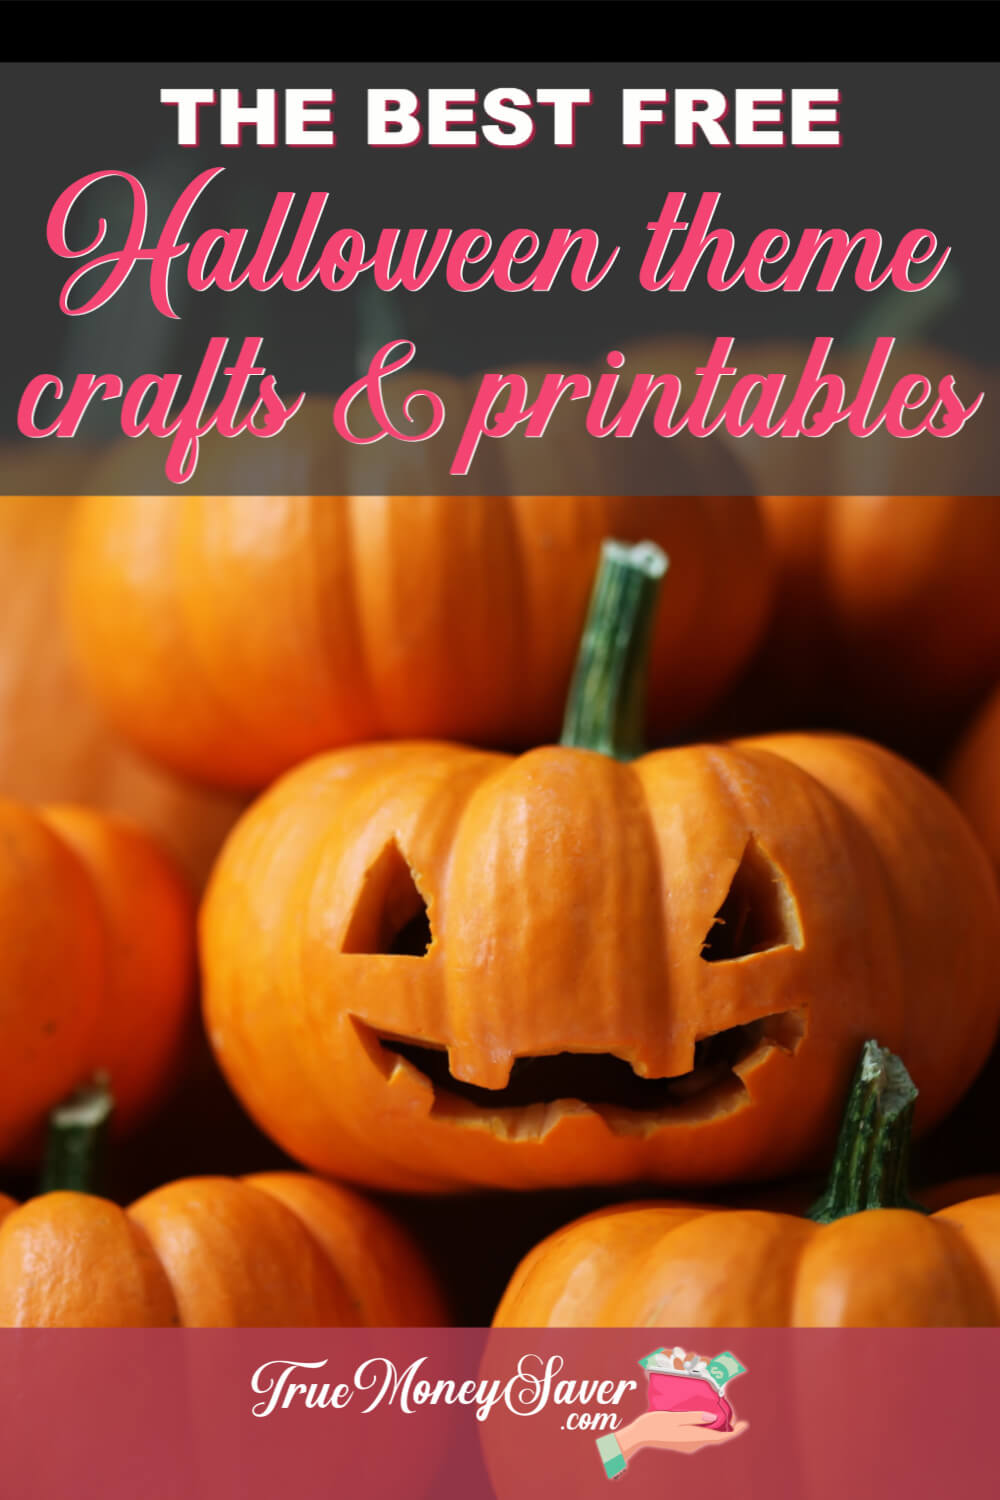 Need to get your kids busy? I\'ve compiled some of the best FREE Halloween printable crafts to keep your kids happy & busy! Plus you\'ll find some easy Halloween crafts ideas and carving templates too! Let\'s have some fun! 